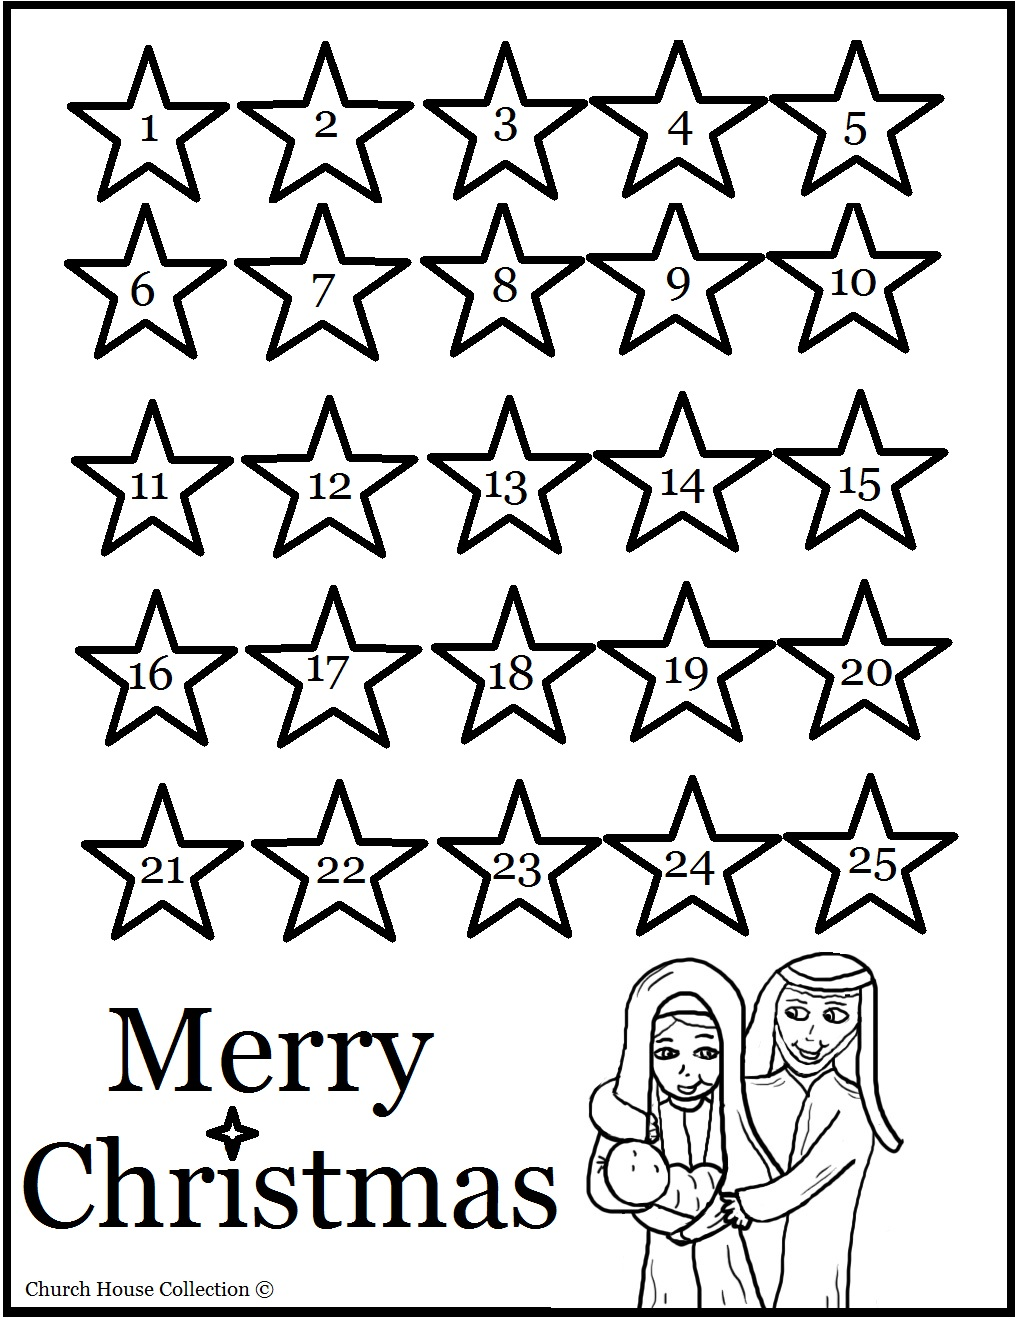 Church house collection blog nativity sunday school lesson for Free advent calendar coloring pages